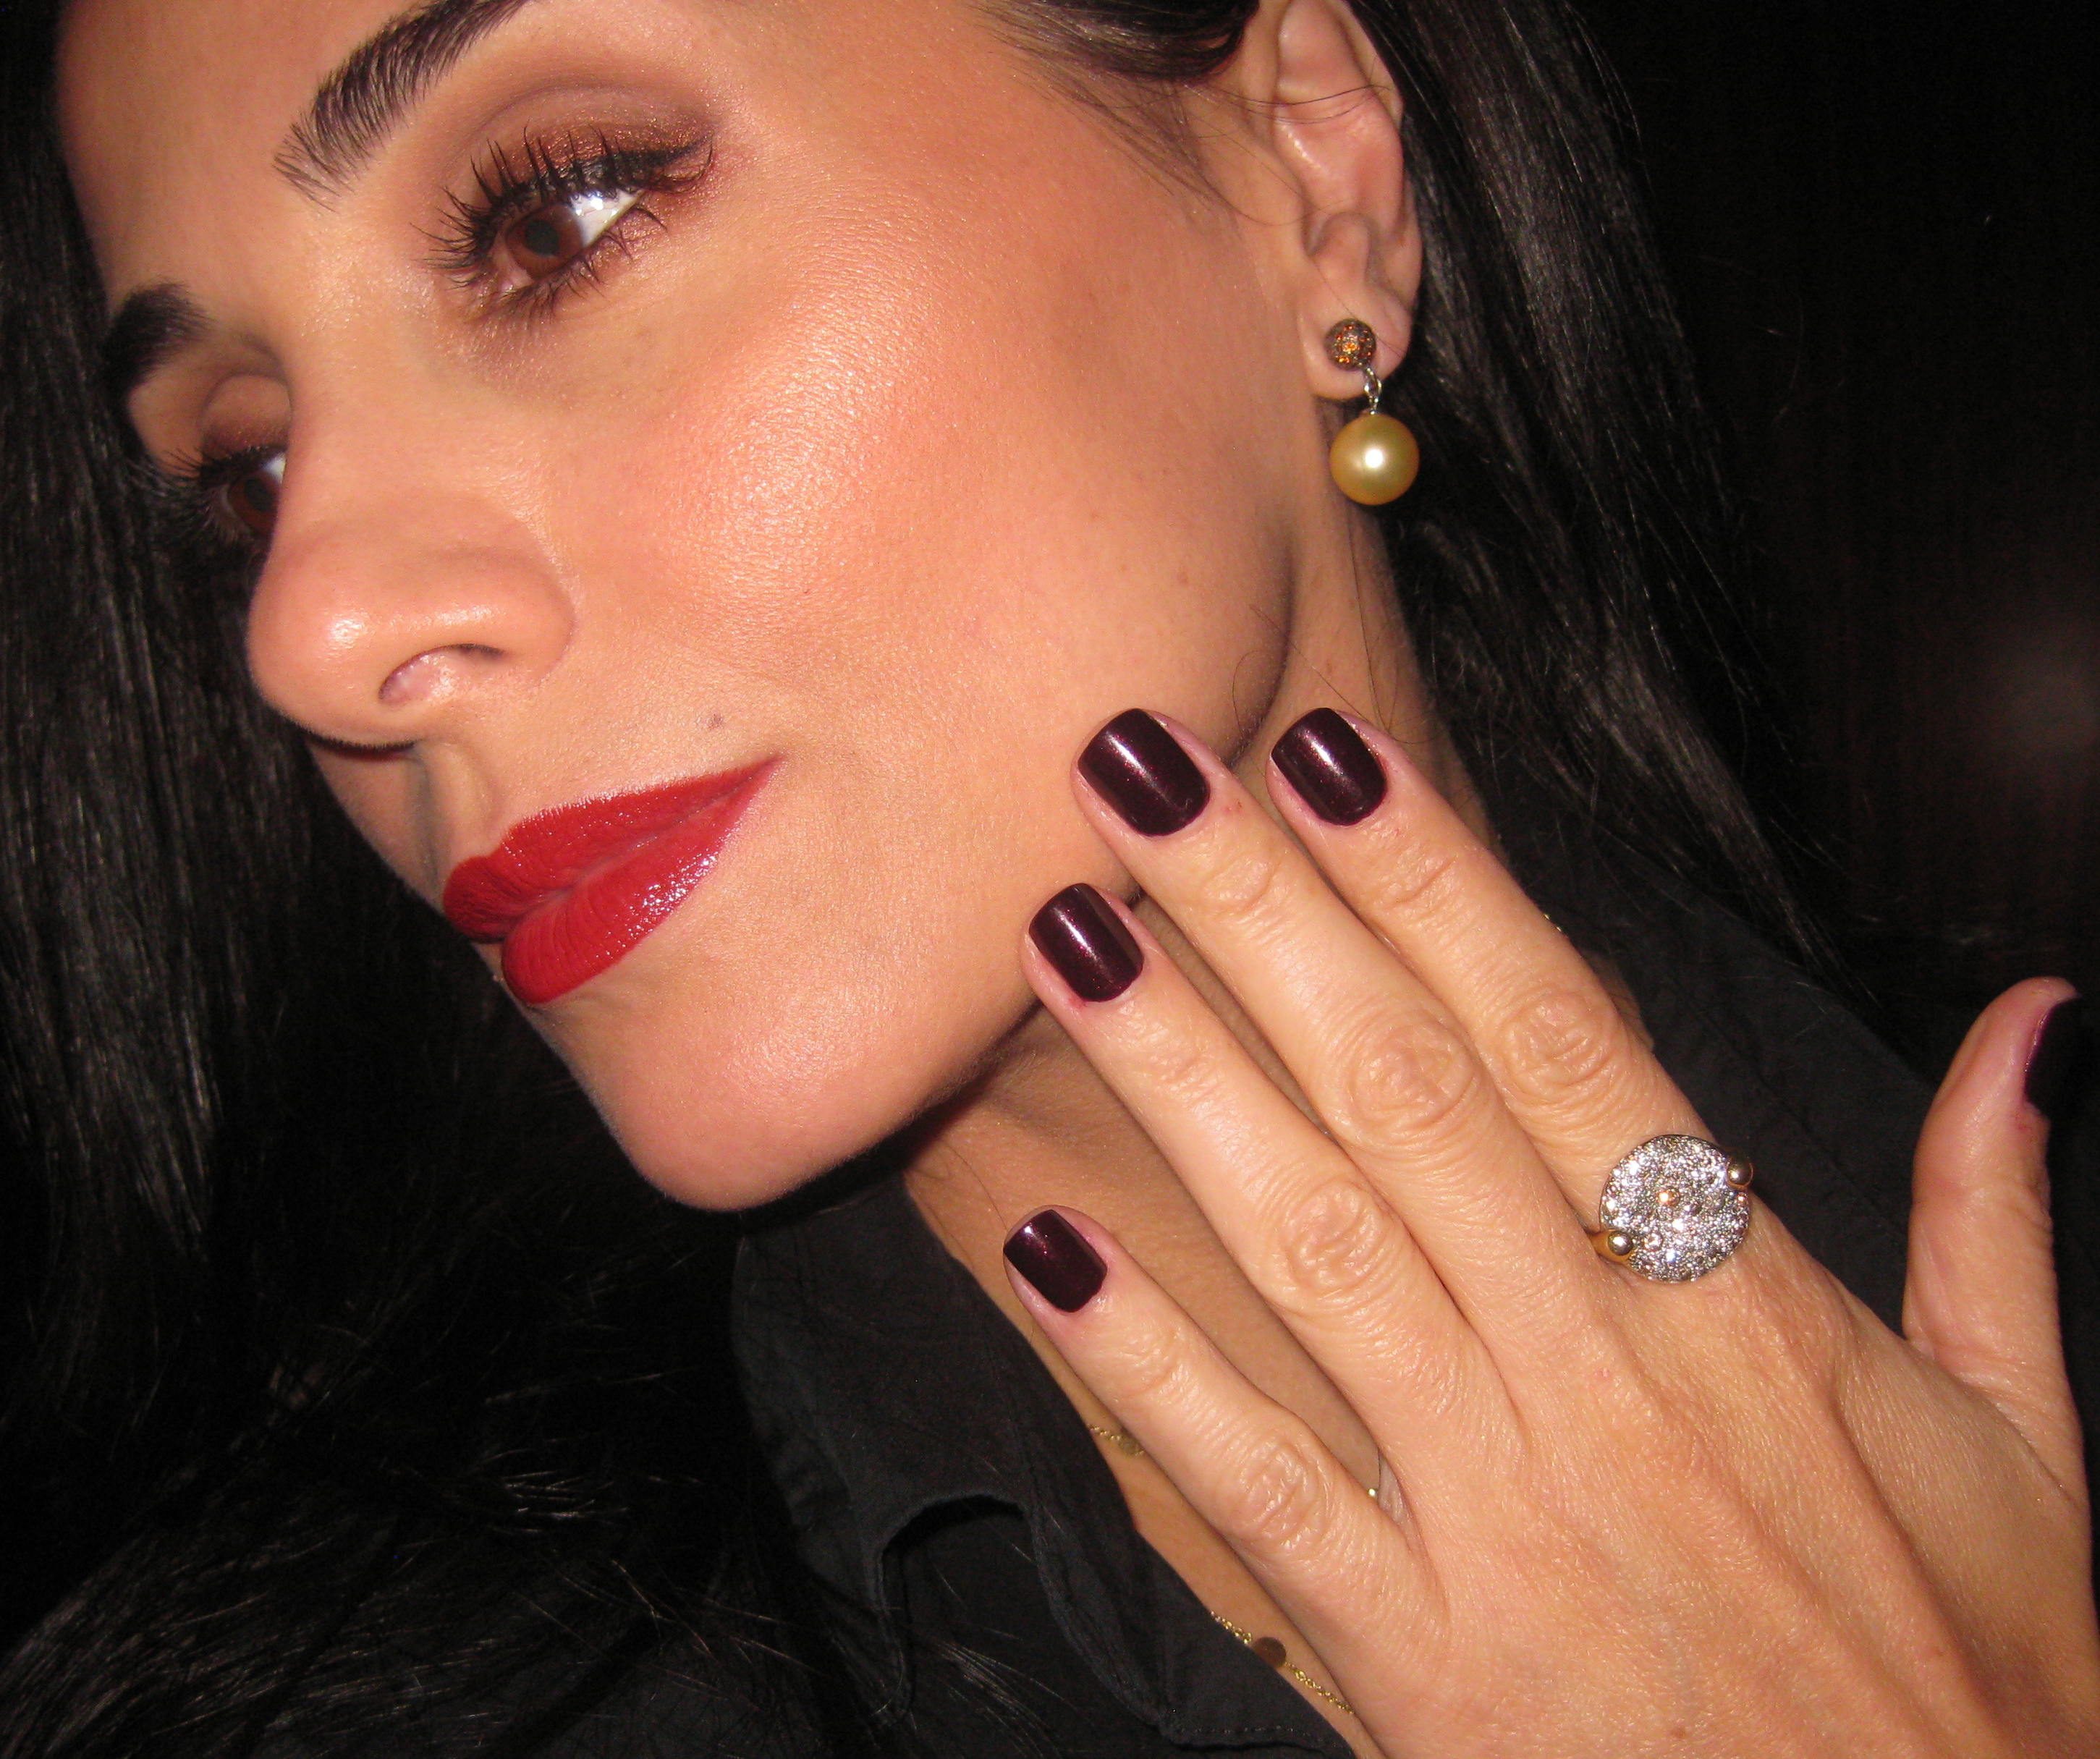 Dior Minuit Diorific Vernis Nail Polish is truly a midnight passion!